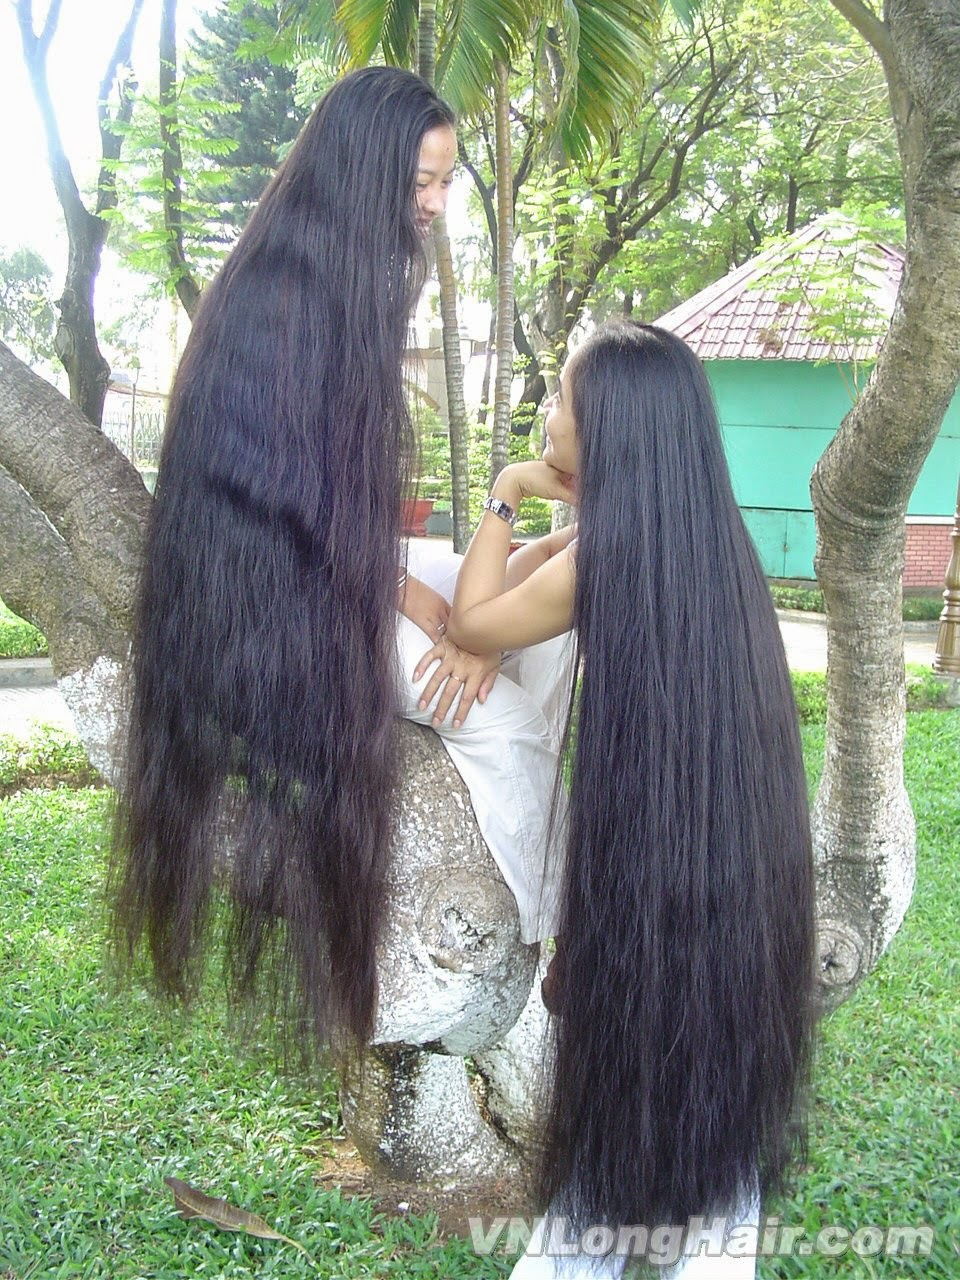 Long Haired Women Hall of Fame: Lam & Hoai